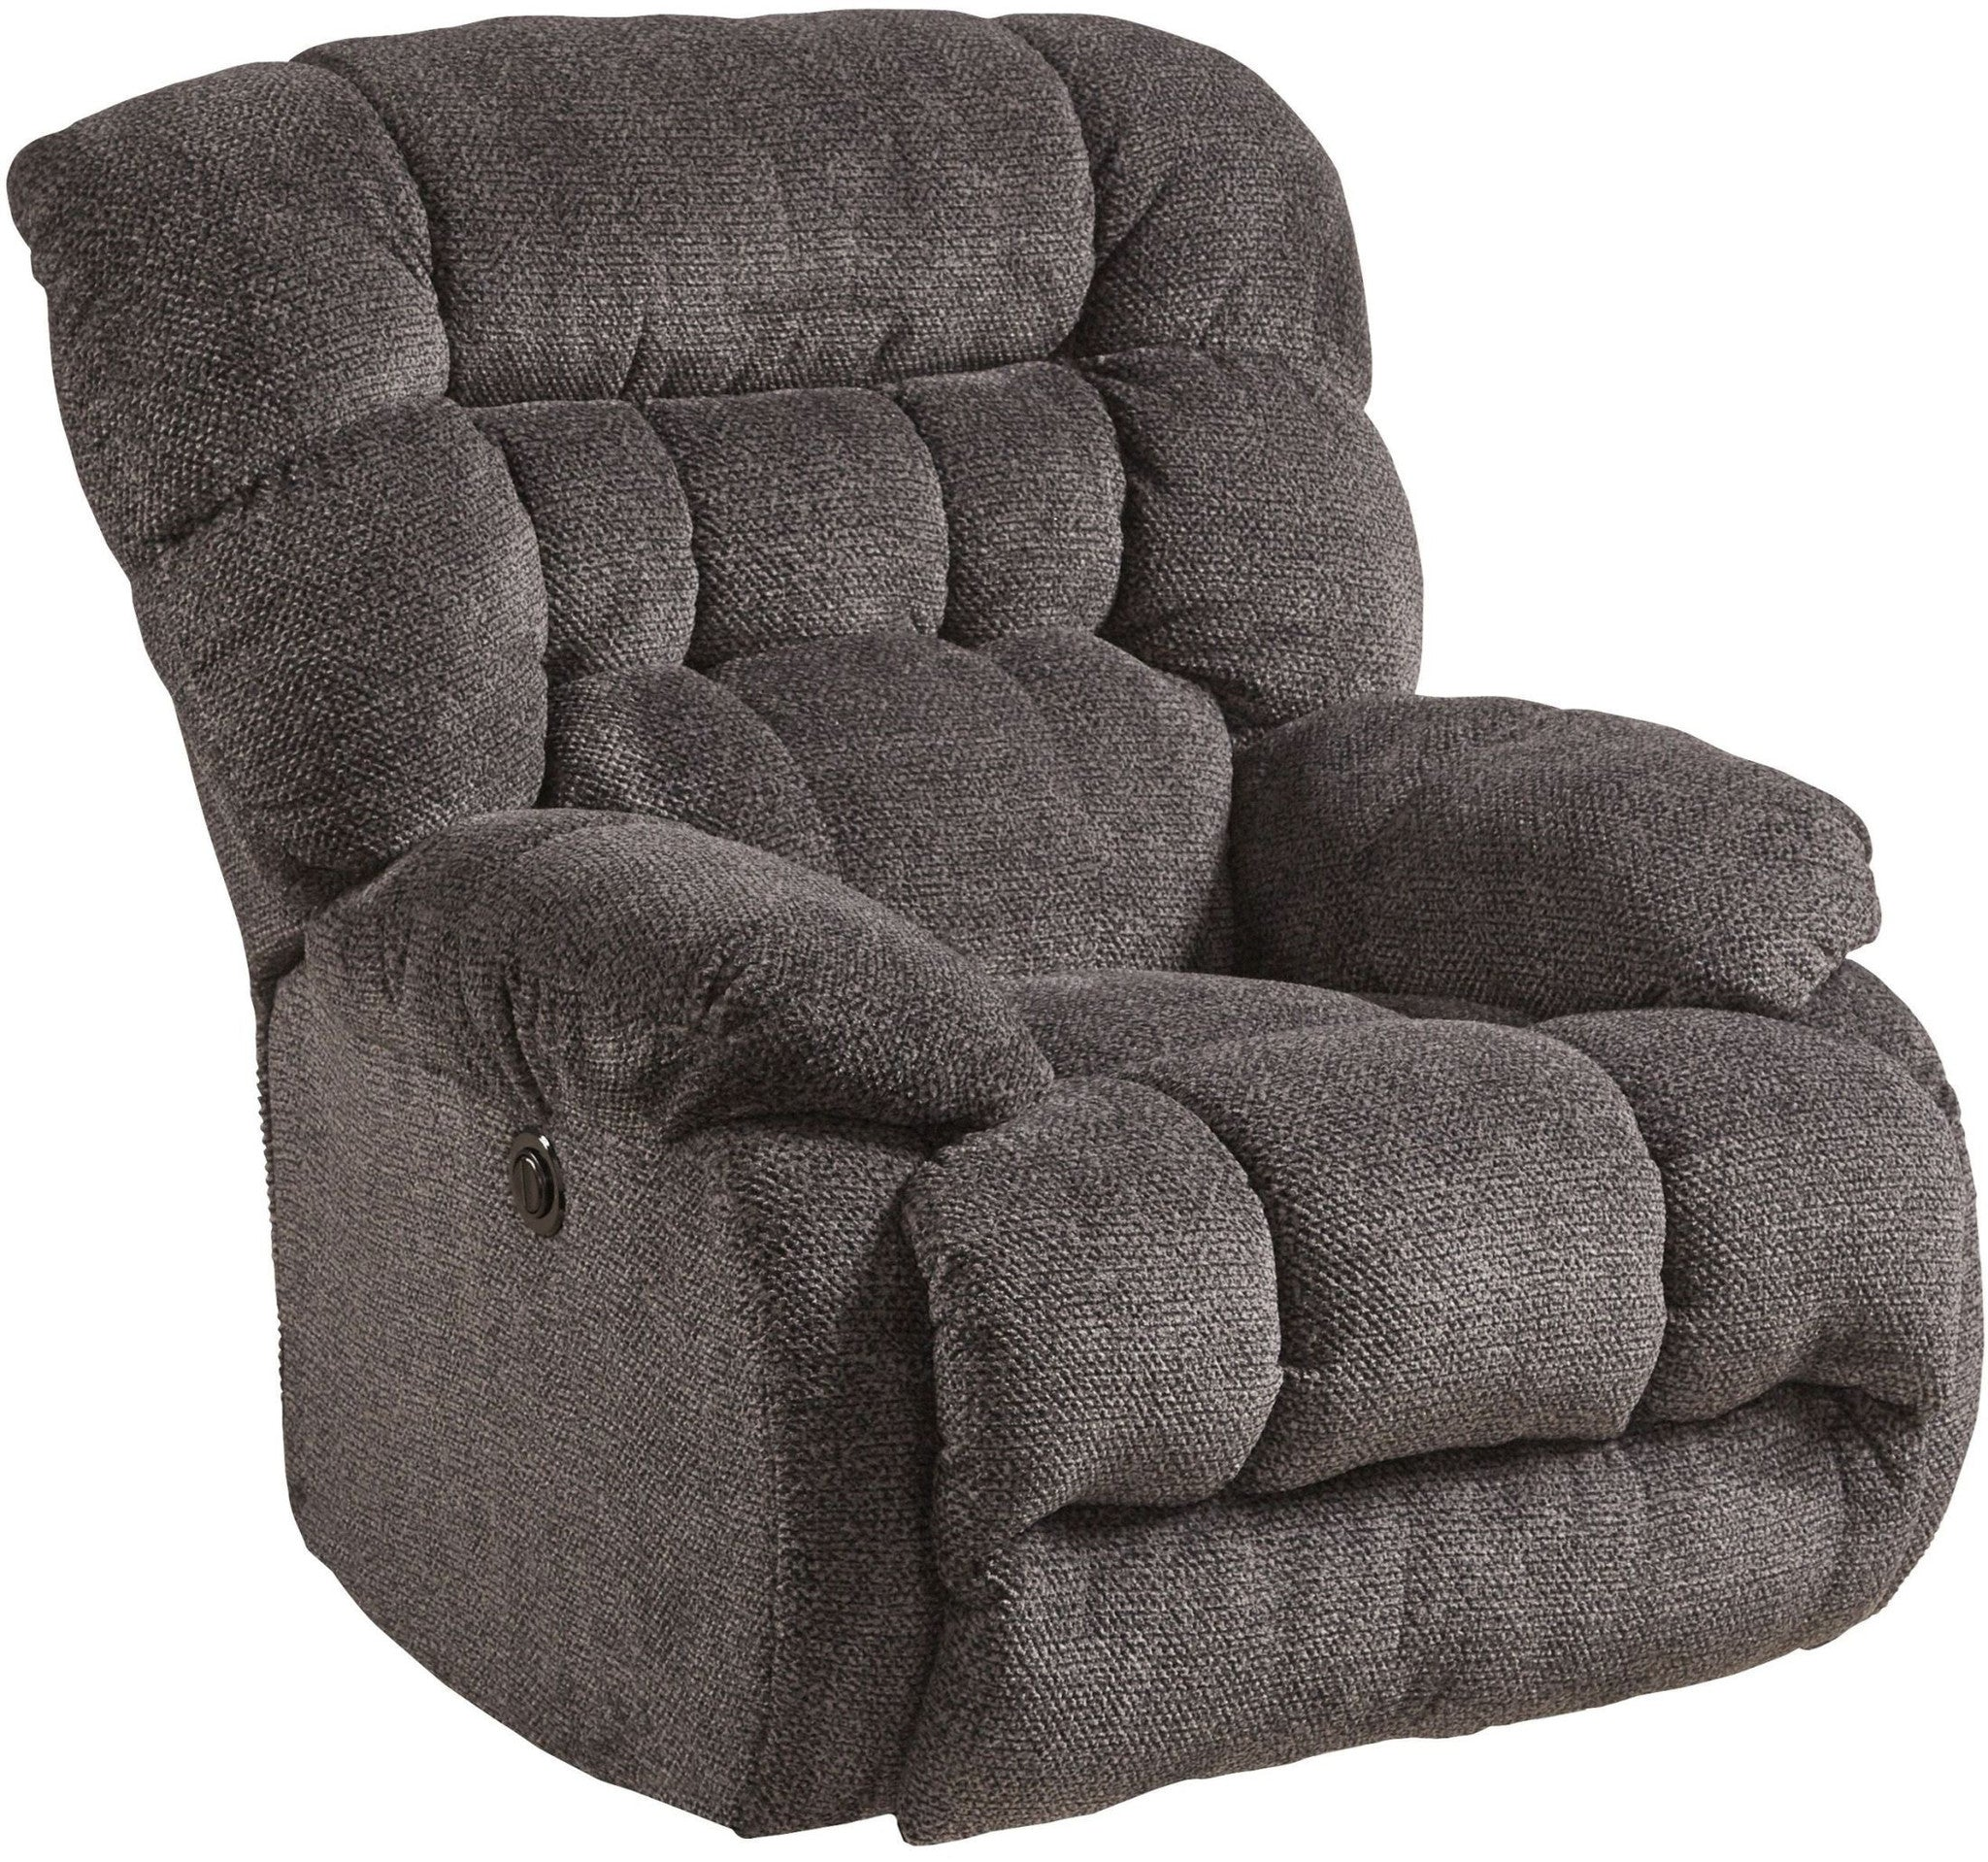 Daly Cobblestone Chaise Rocker Recliner